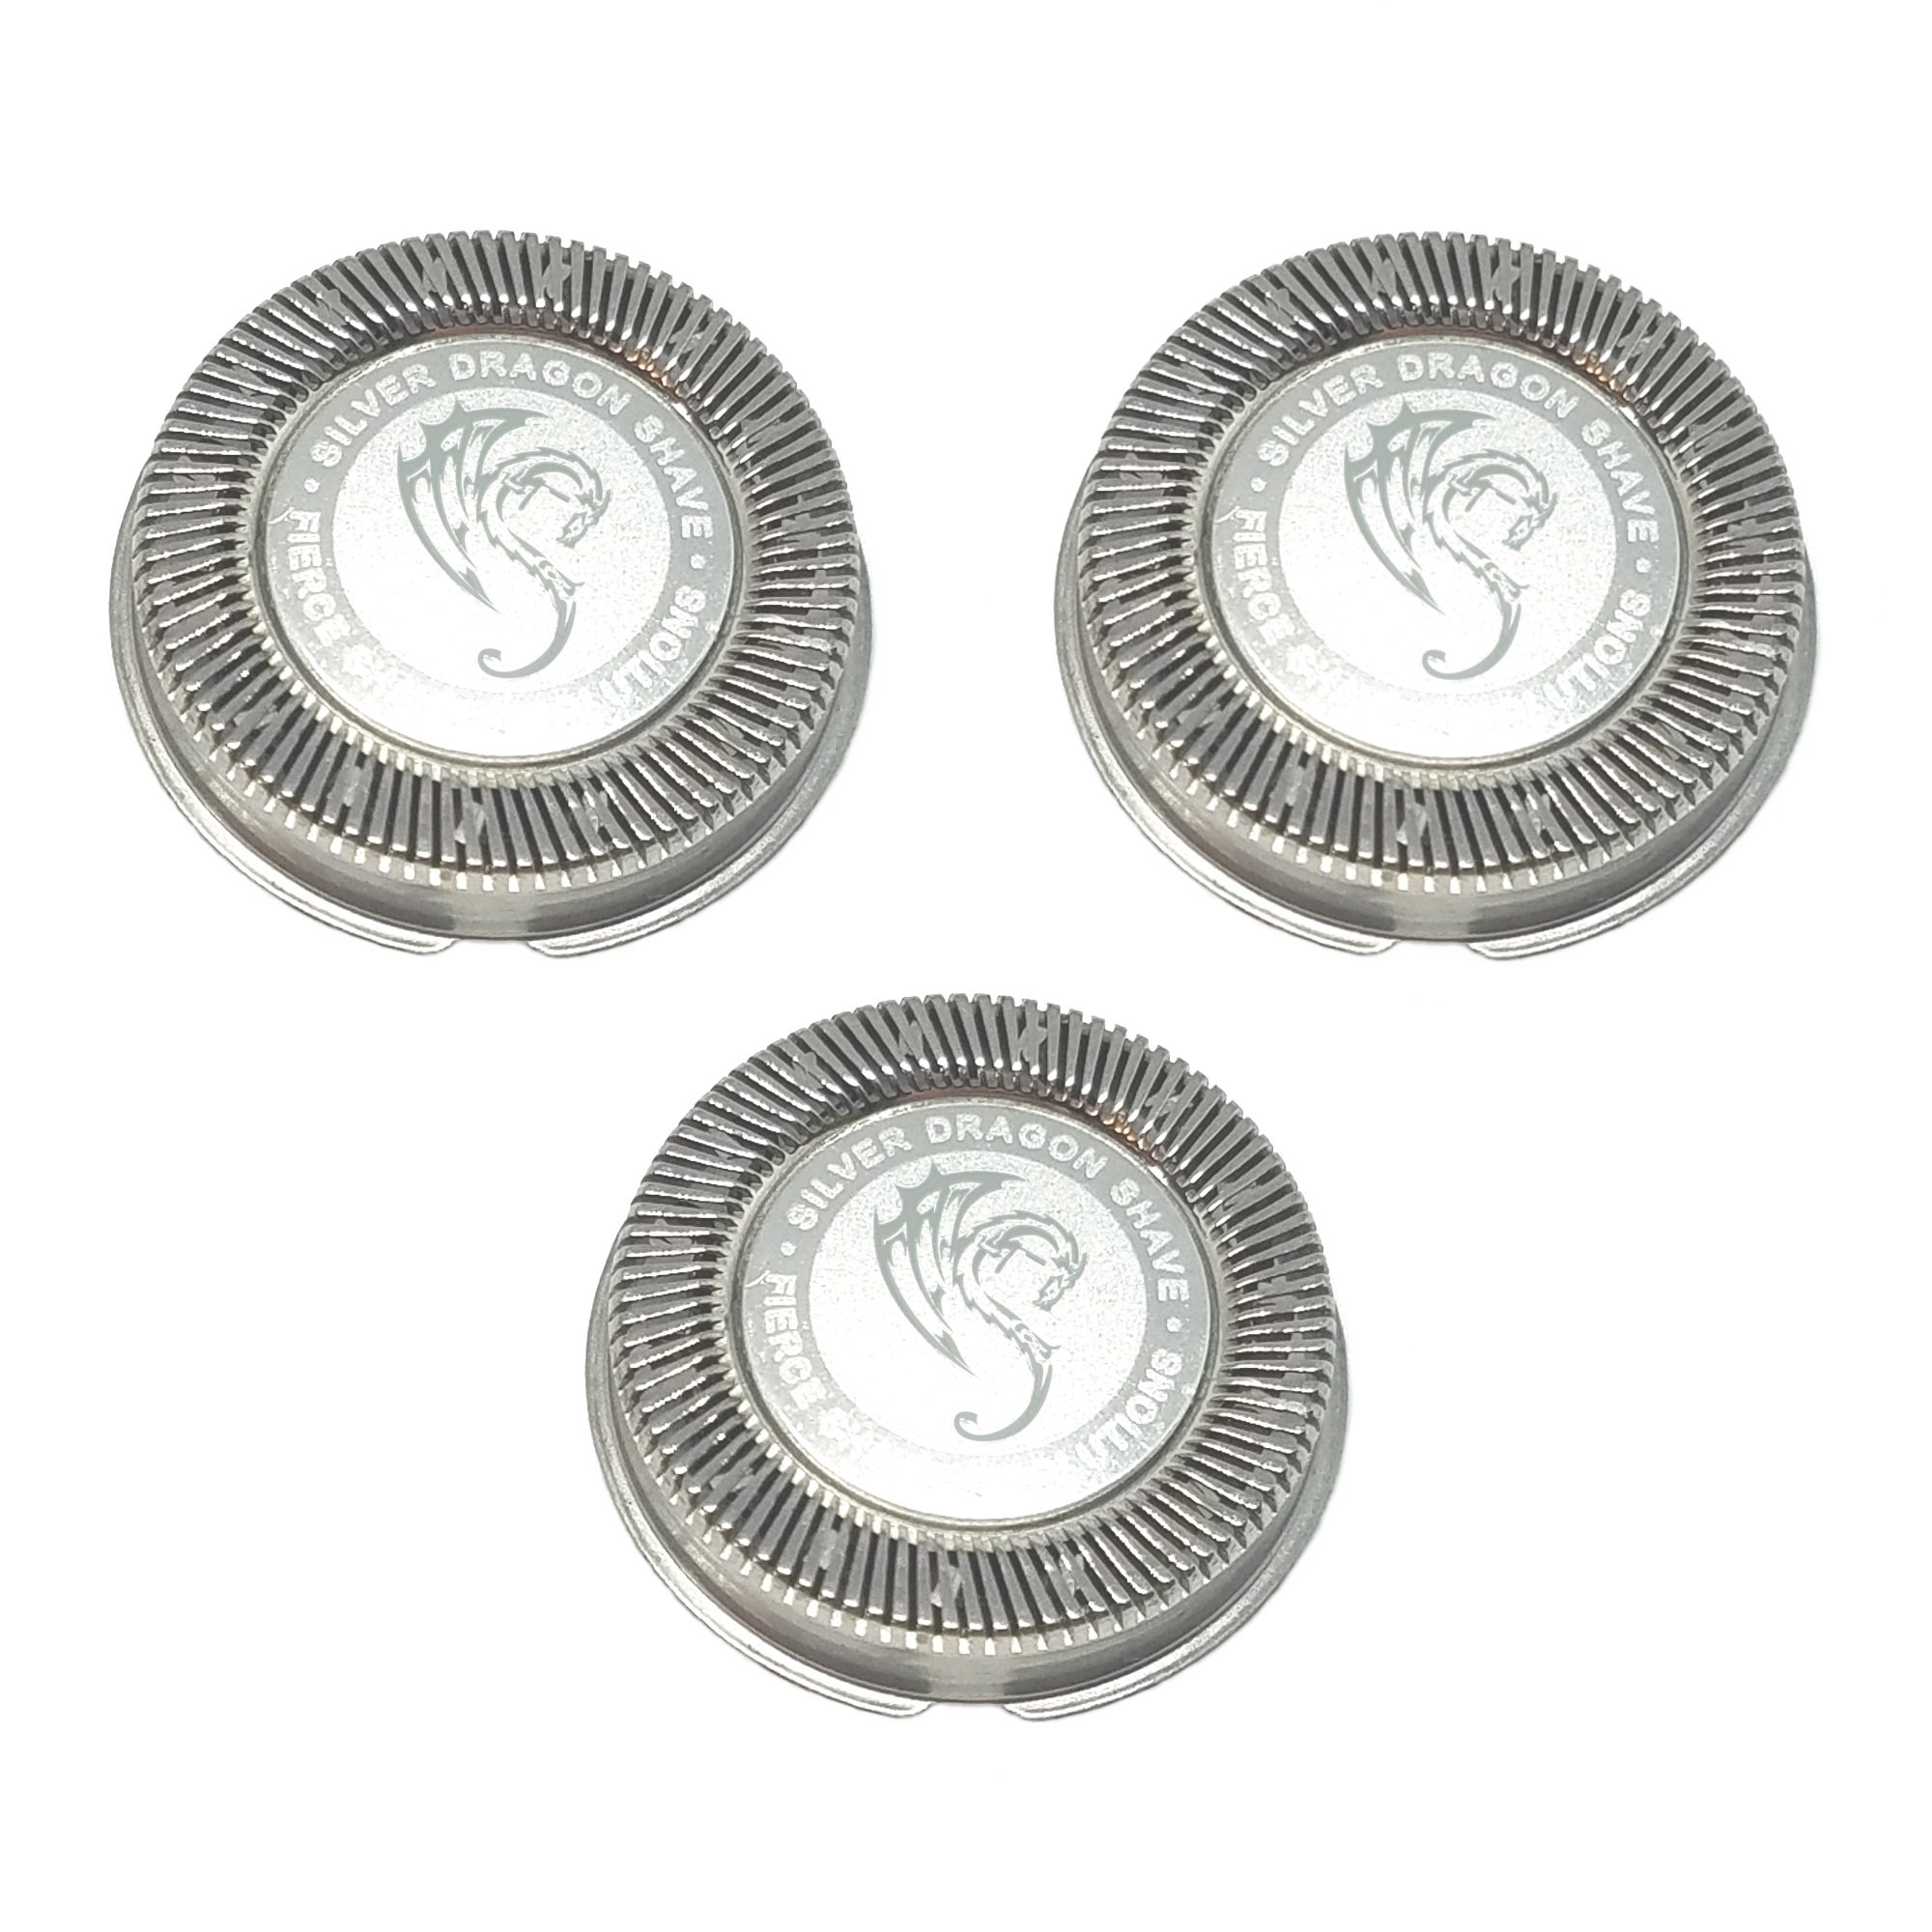 HQ56 HQ55 HQ4 HQ3 Replacement Heads Set of 3 Precision Silver Dragon Universal Cooling Surface Blades for Philips Norelco Compatible Electric Shavers (3)